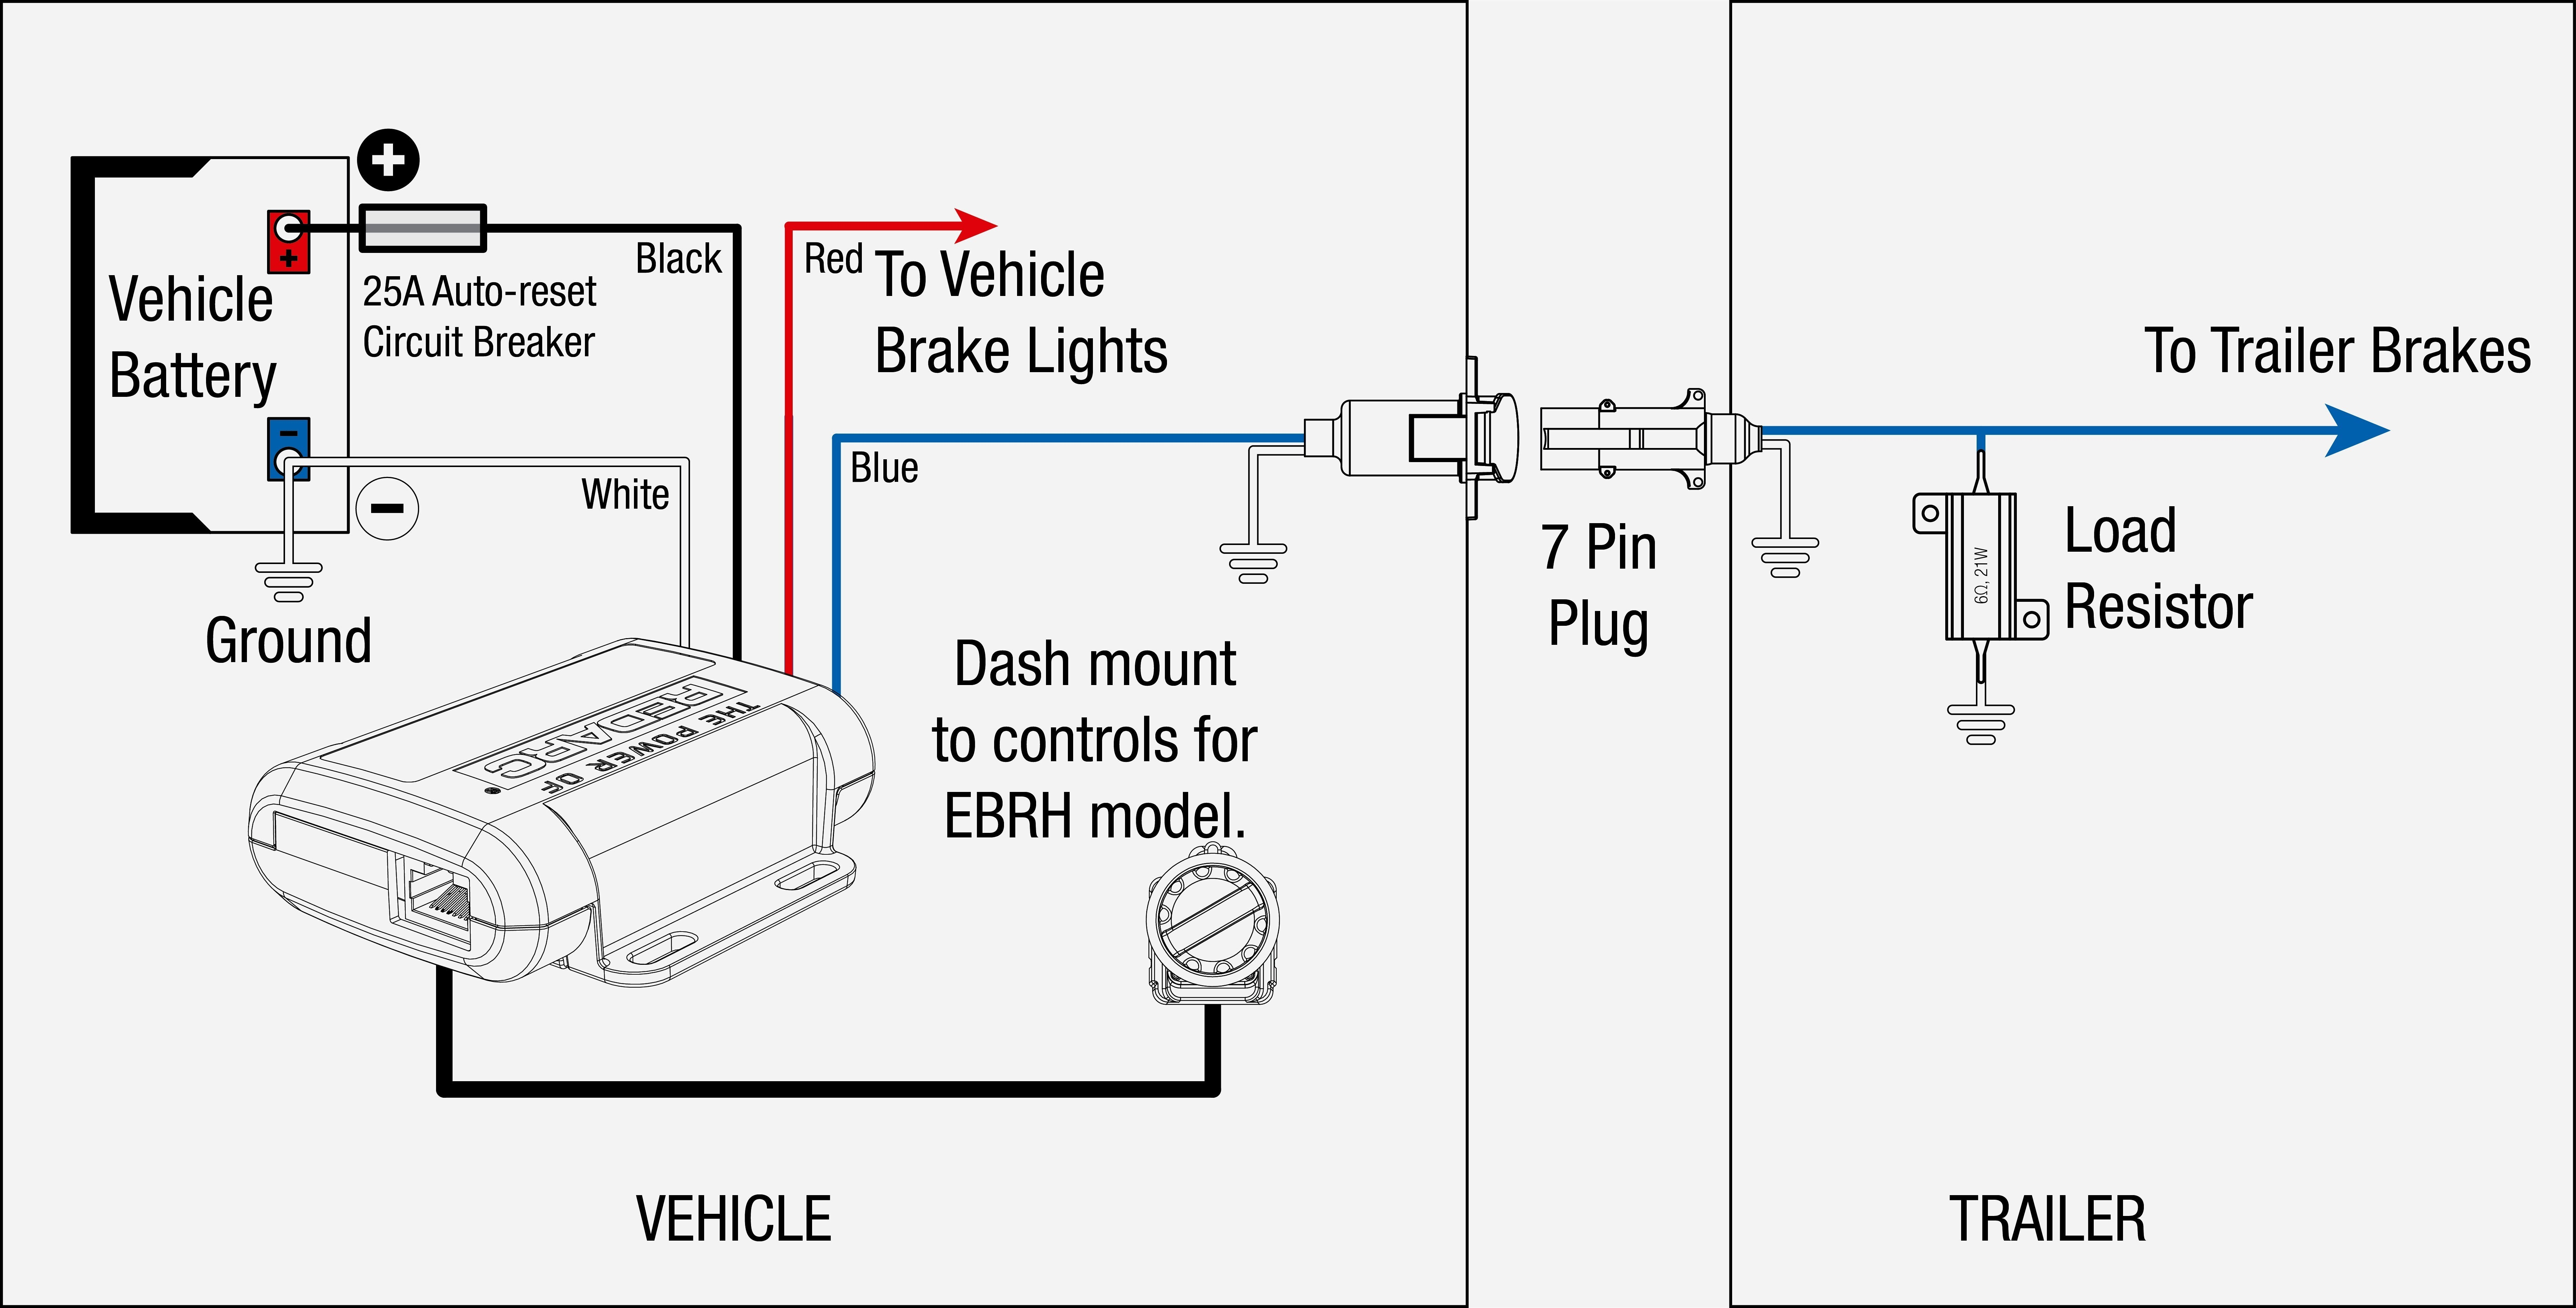 Wiring Diagram for Redarc Electric Brake Controller Fresh Wiring Diagram for Redarc Electric Brake Controller Archives